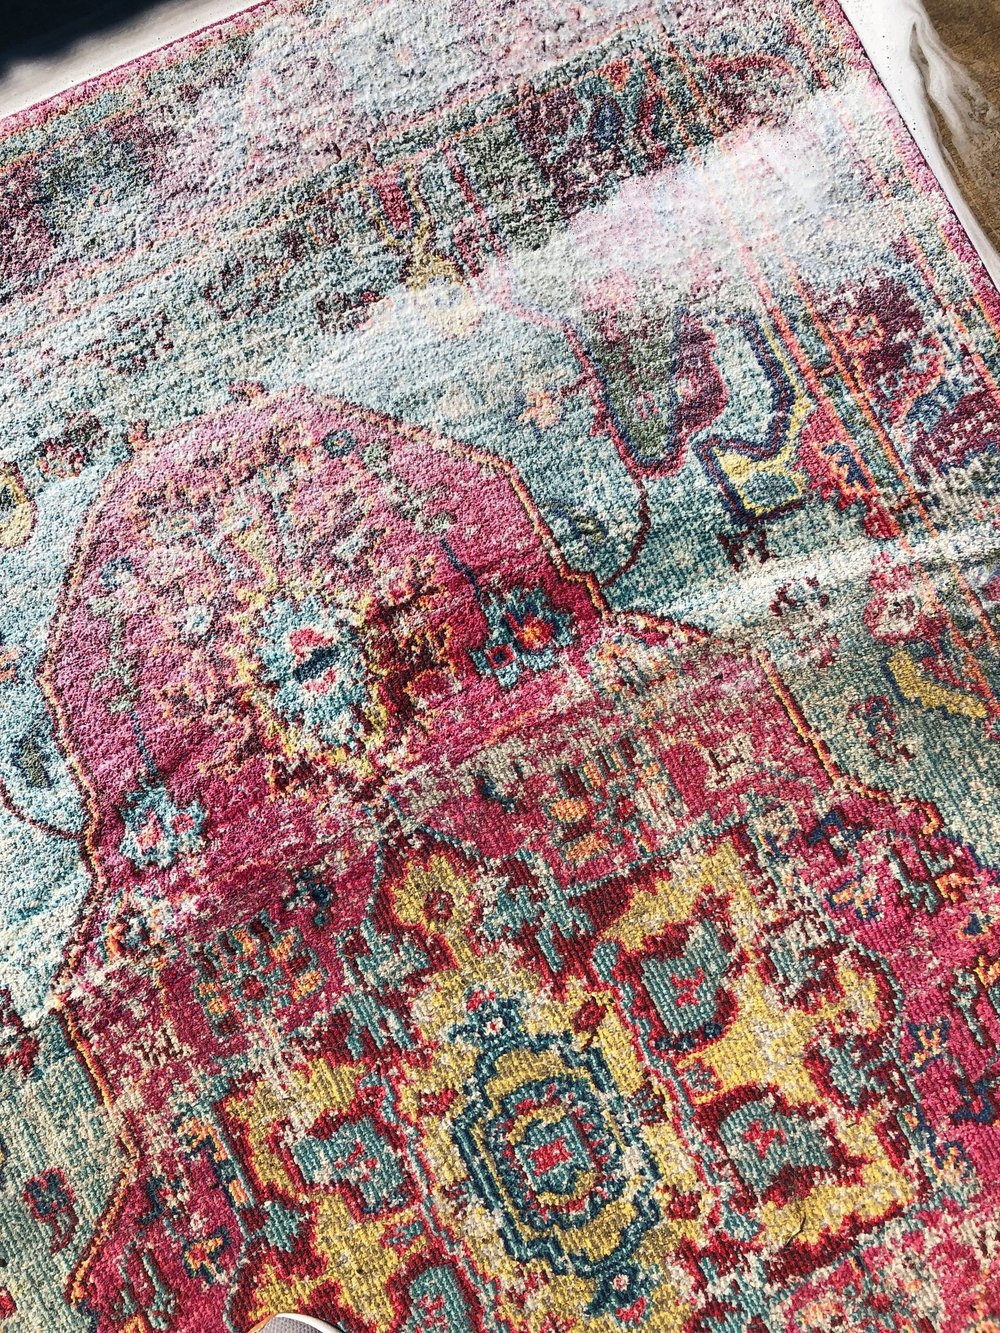 How to deep clean area rugs